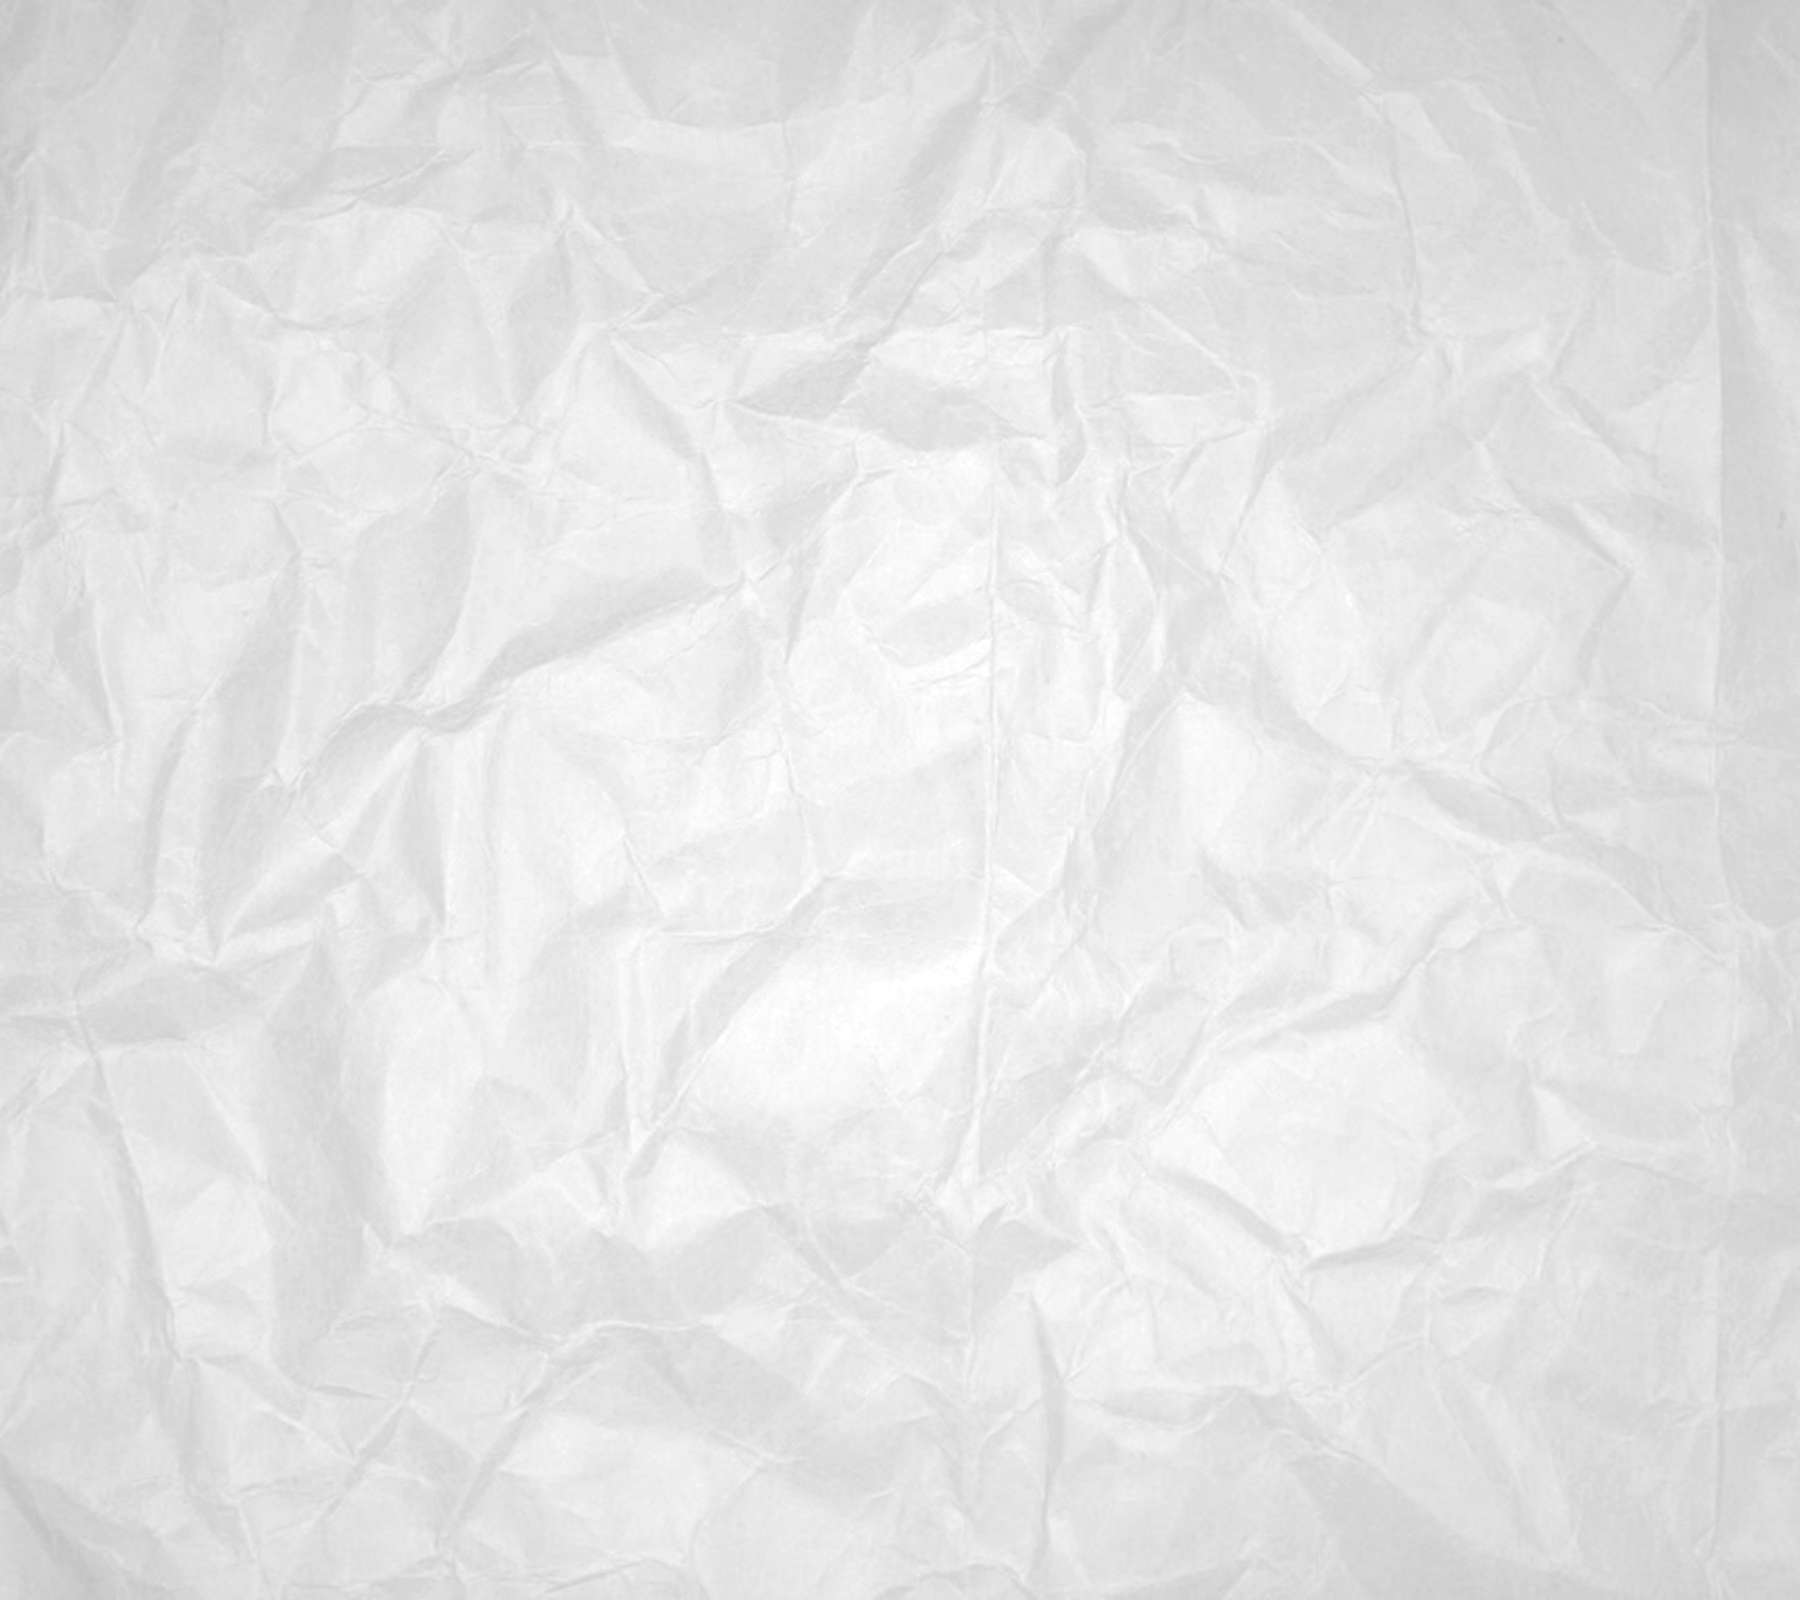 Background Wallpaper Image Wrinkled White Paper Background 1800x1600 1800x1600